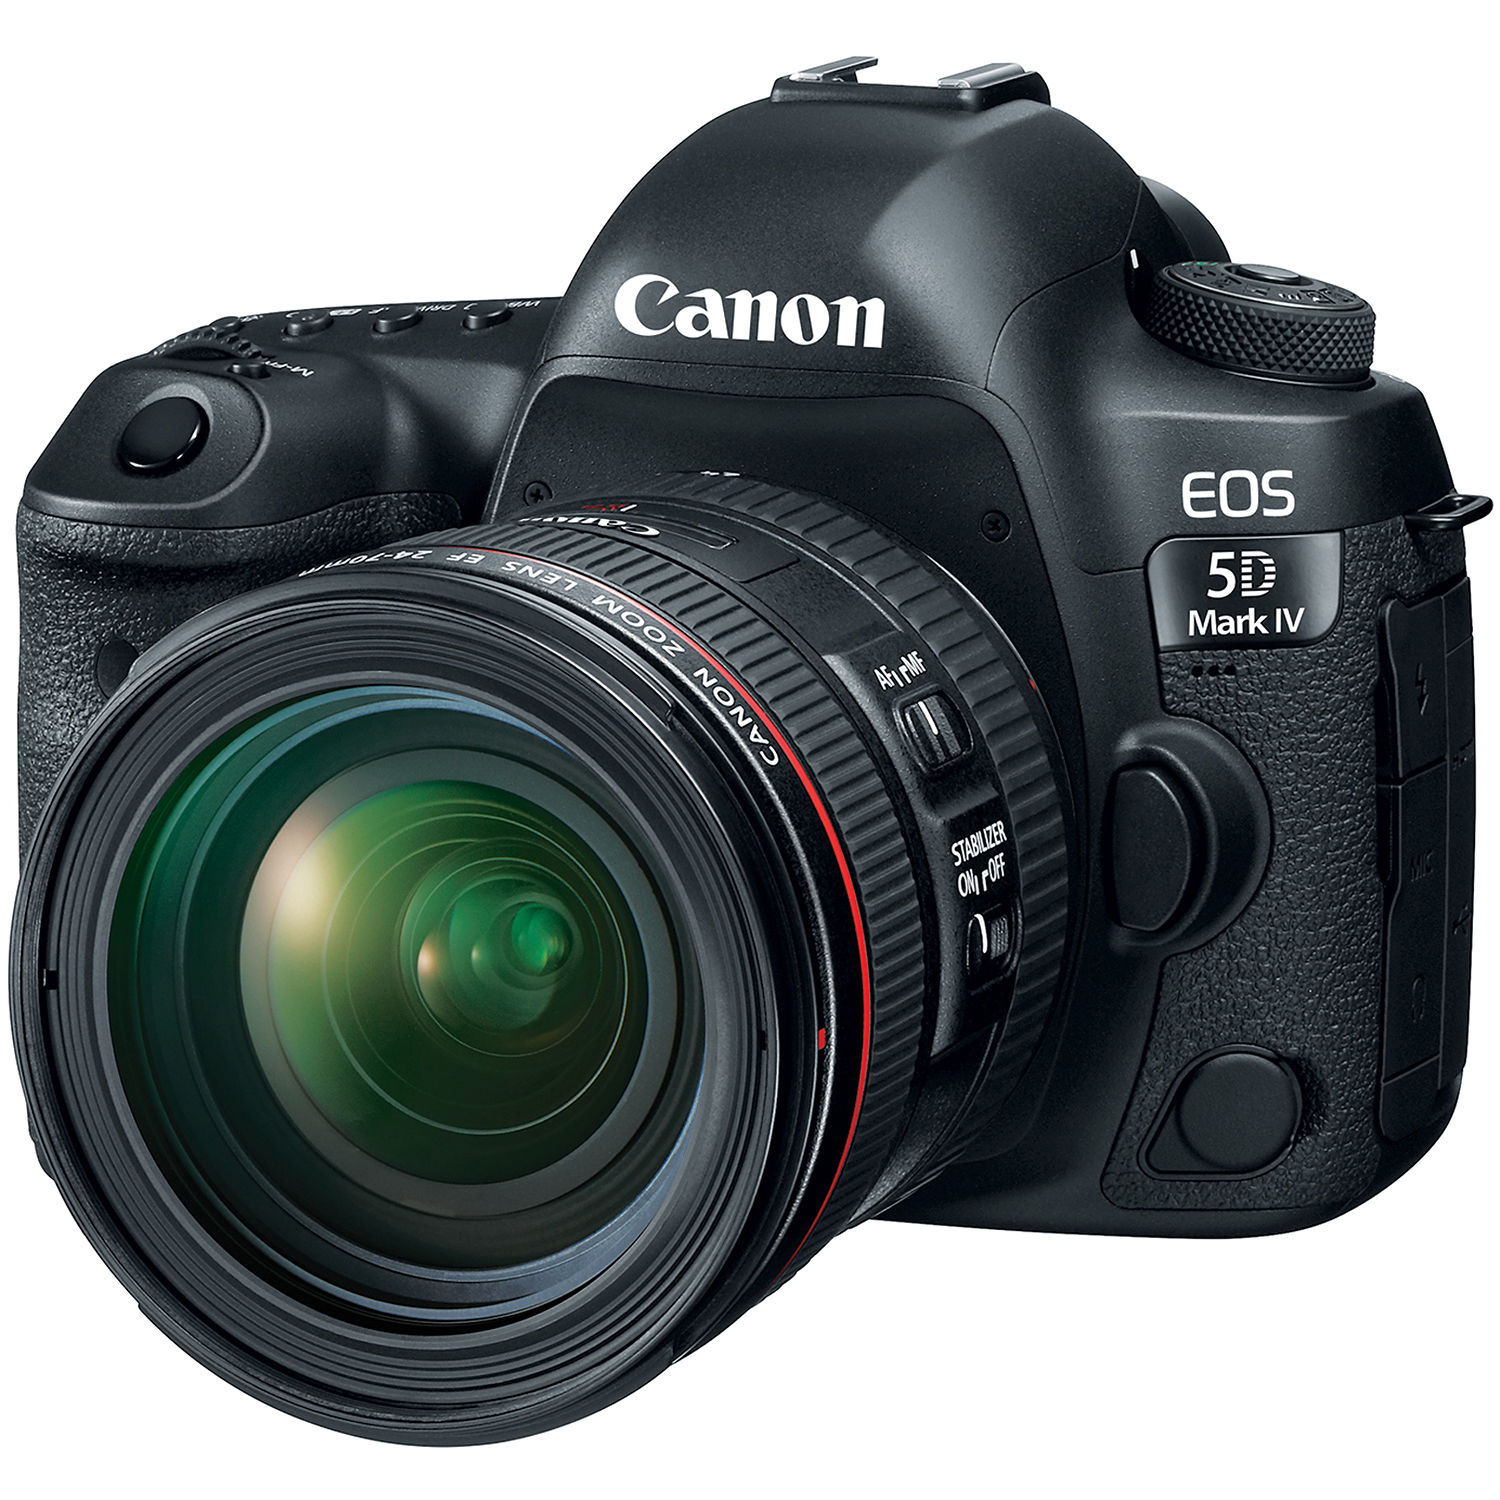 canon eos 5d mark iv dslr camera with 24 70mm f 4l lens